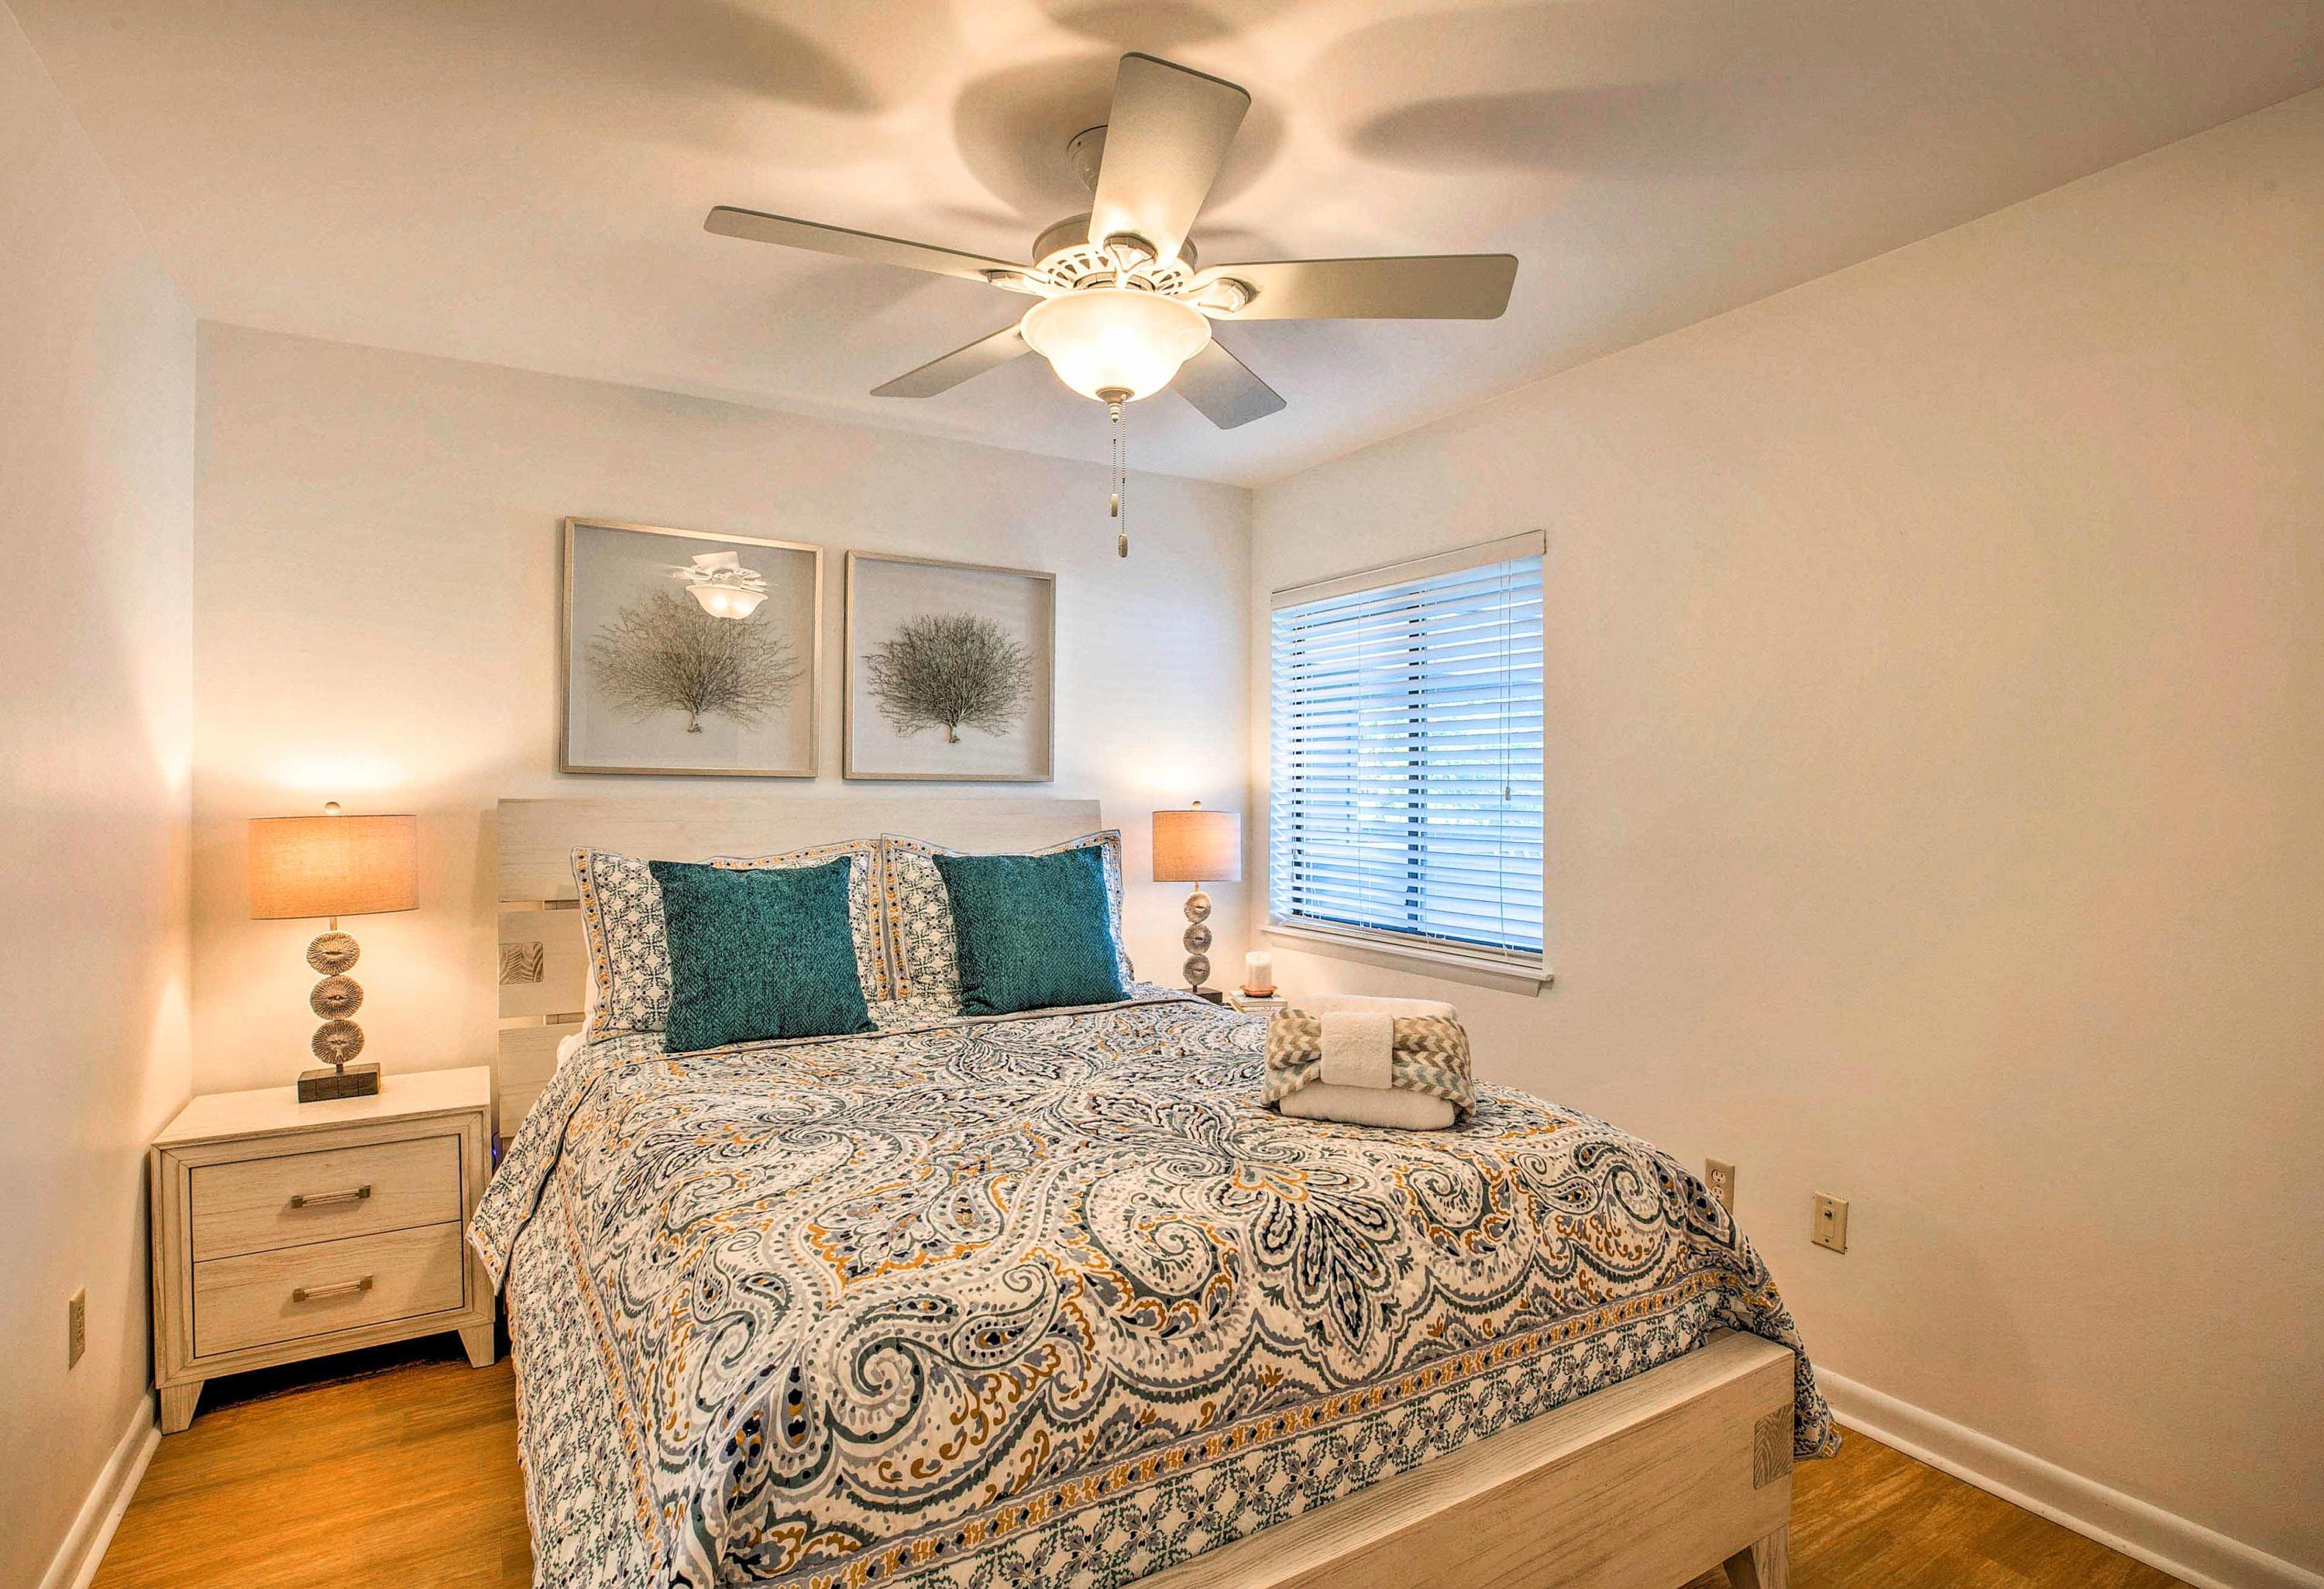 Mariners Cay Homes For Sale - 93 Mariners Cay, Folly Beach, SC - 12